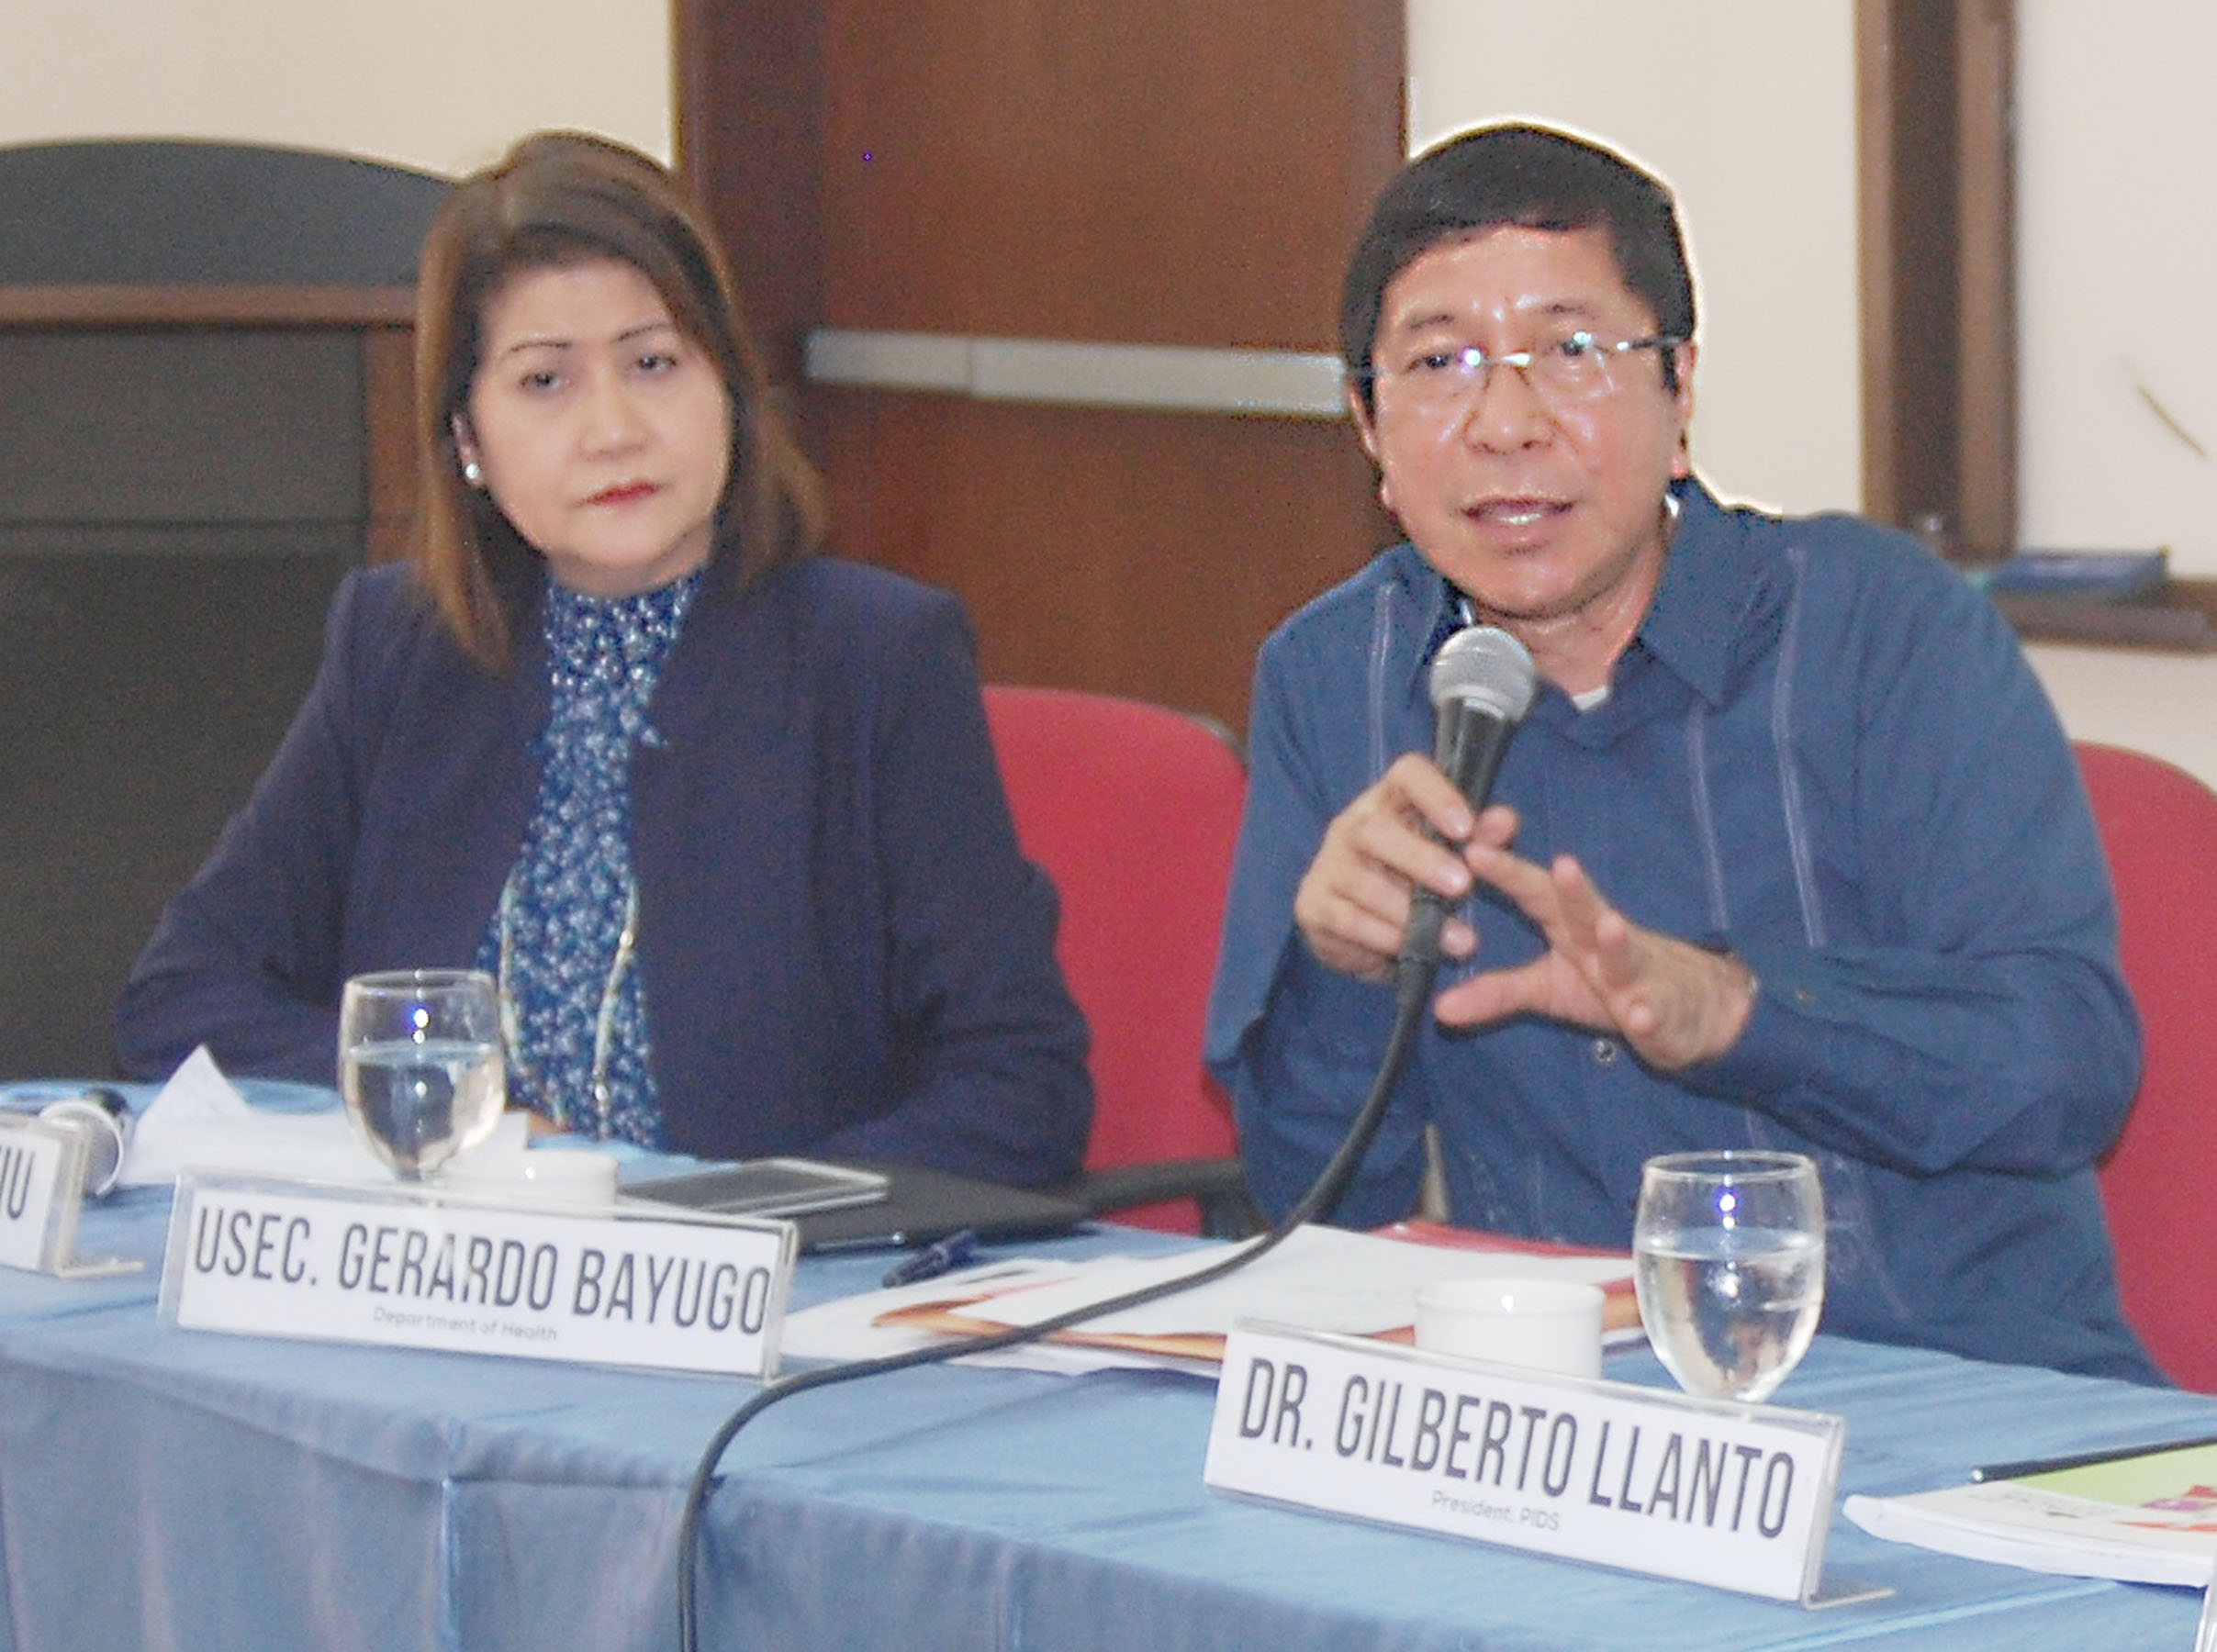 Dr. Gerardo V. Bayugo (right), Department of Health (DOH) Undersecretary for Technical Services, at a press conference held at the Philippine Information Agency (PIA) Conference Room, Visayas Avenue, Quezon on Monday (Sept. 5, 2016). Beside him is PIA Director Olive Tiu. (Photo: Johnny Guevarra/PNA)